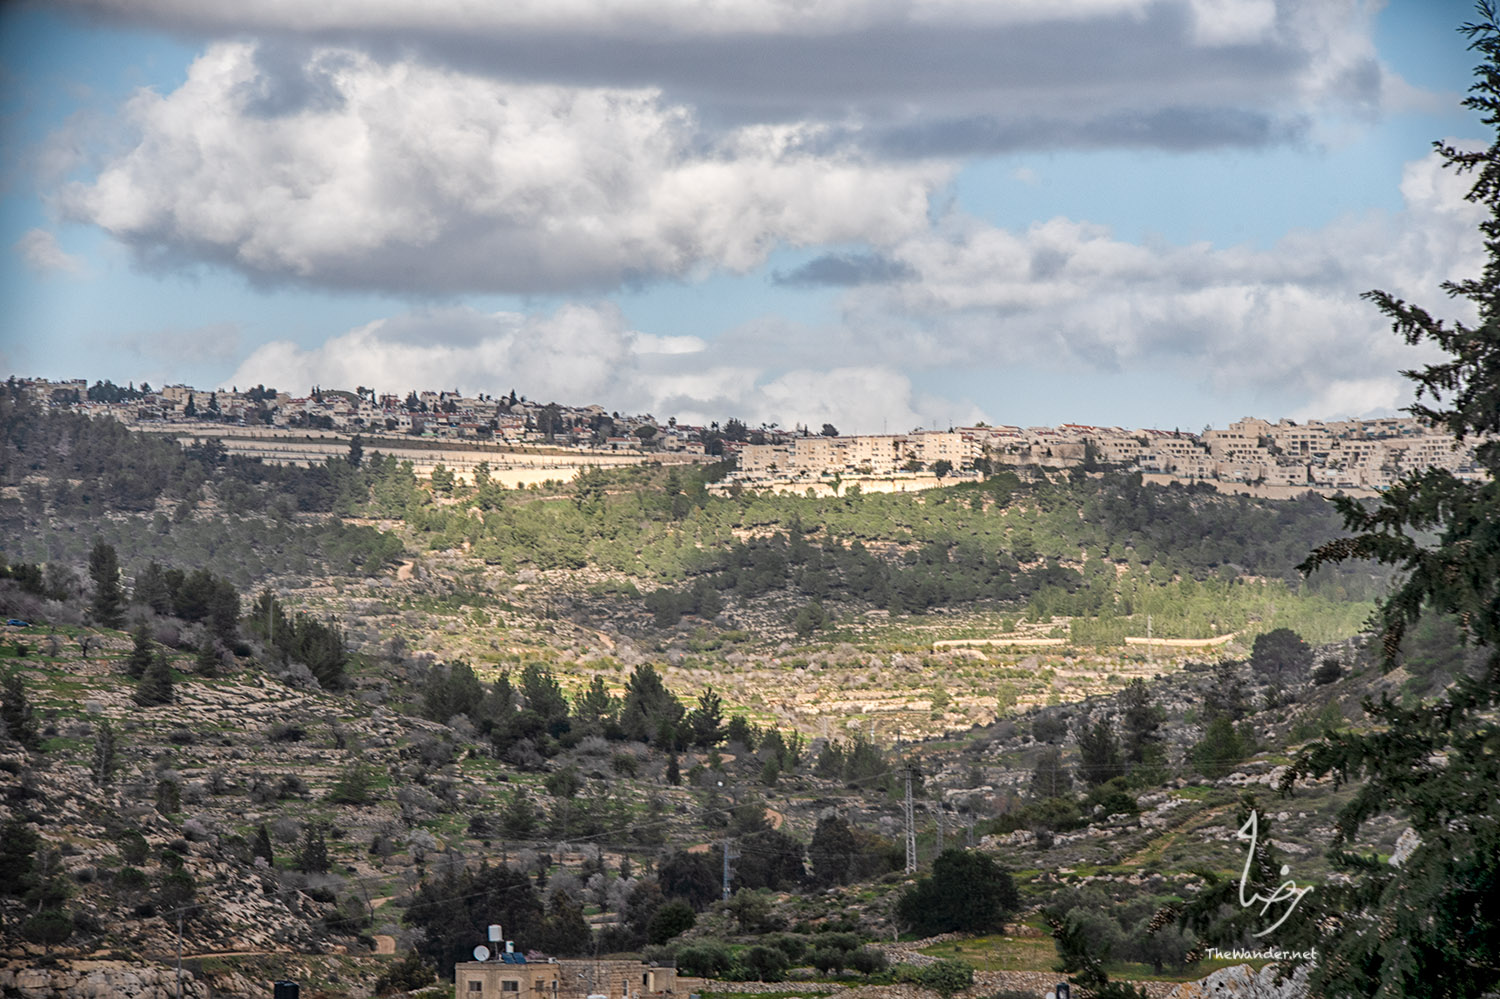 Settlements across Battir